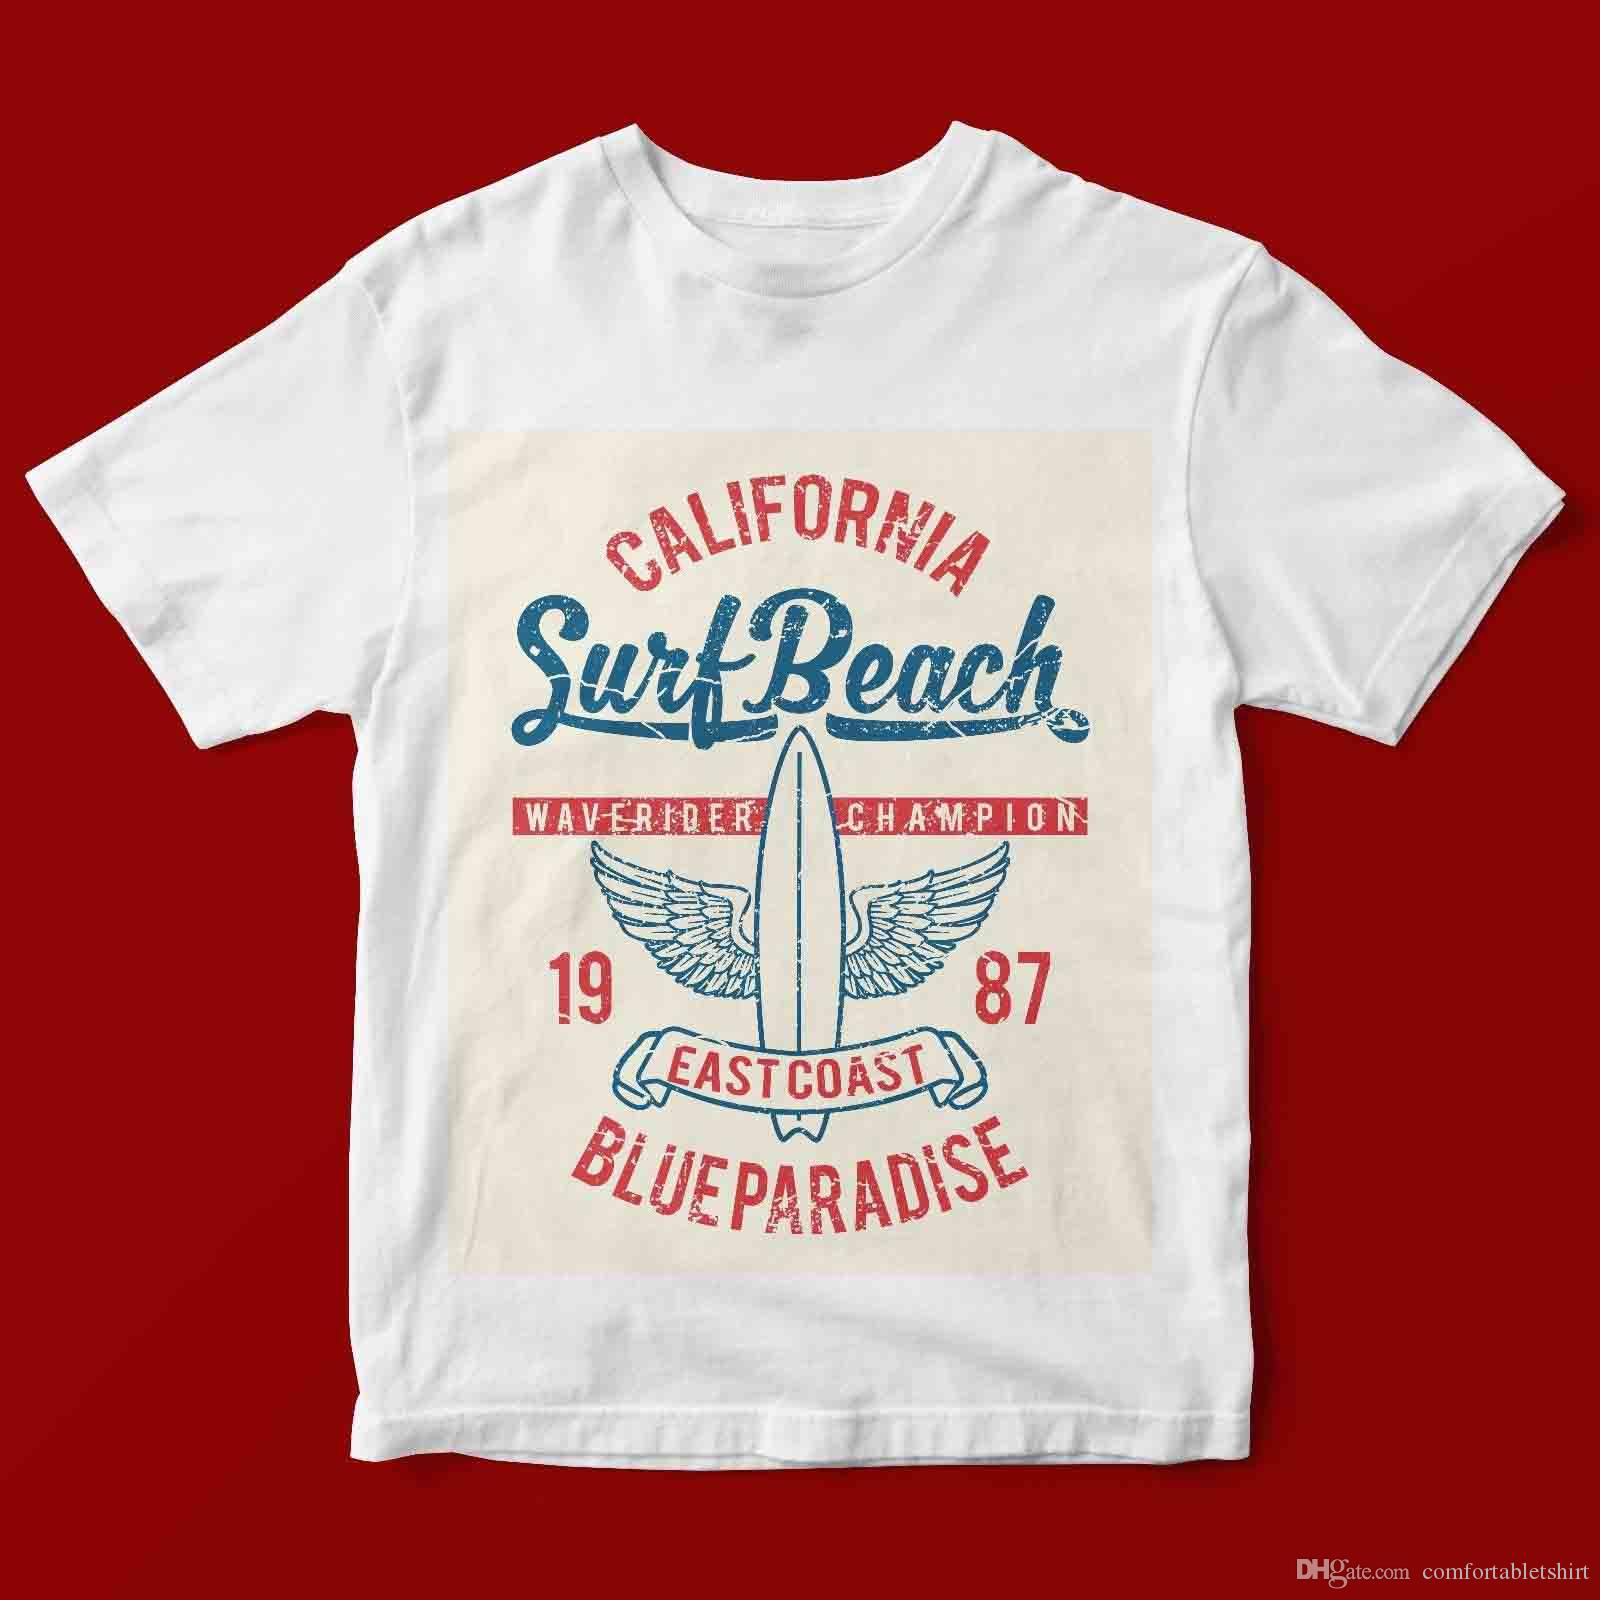 California Surf Beach T Shirt Unisex 973 Funny T Shirts Prints Funky